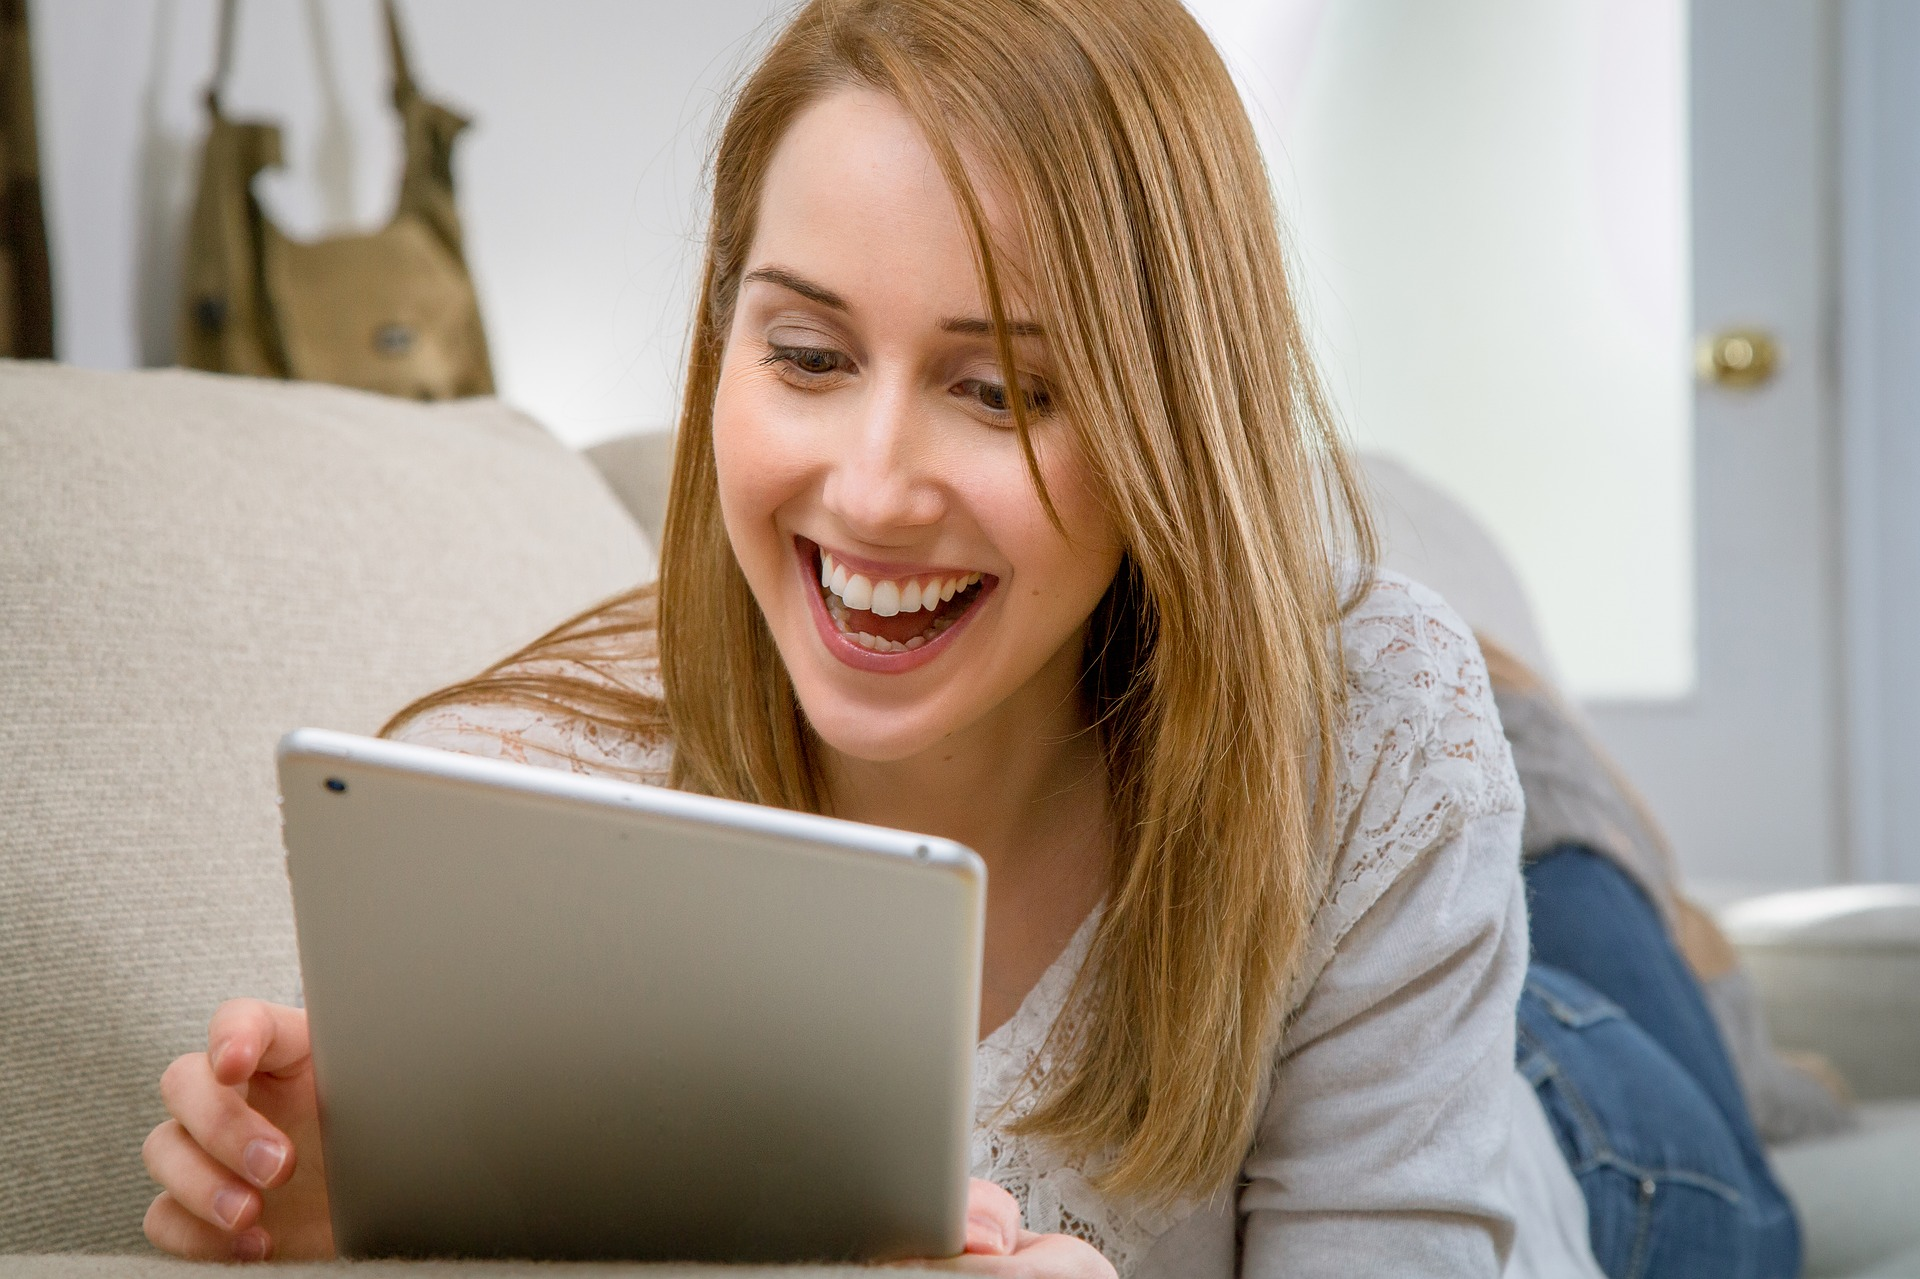 Woman smiling at tablet screen